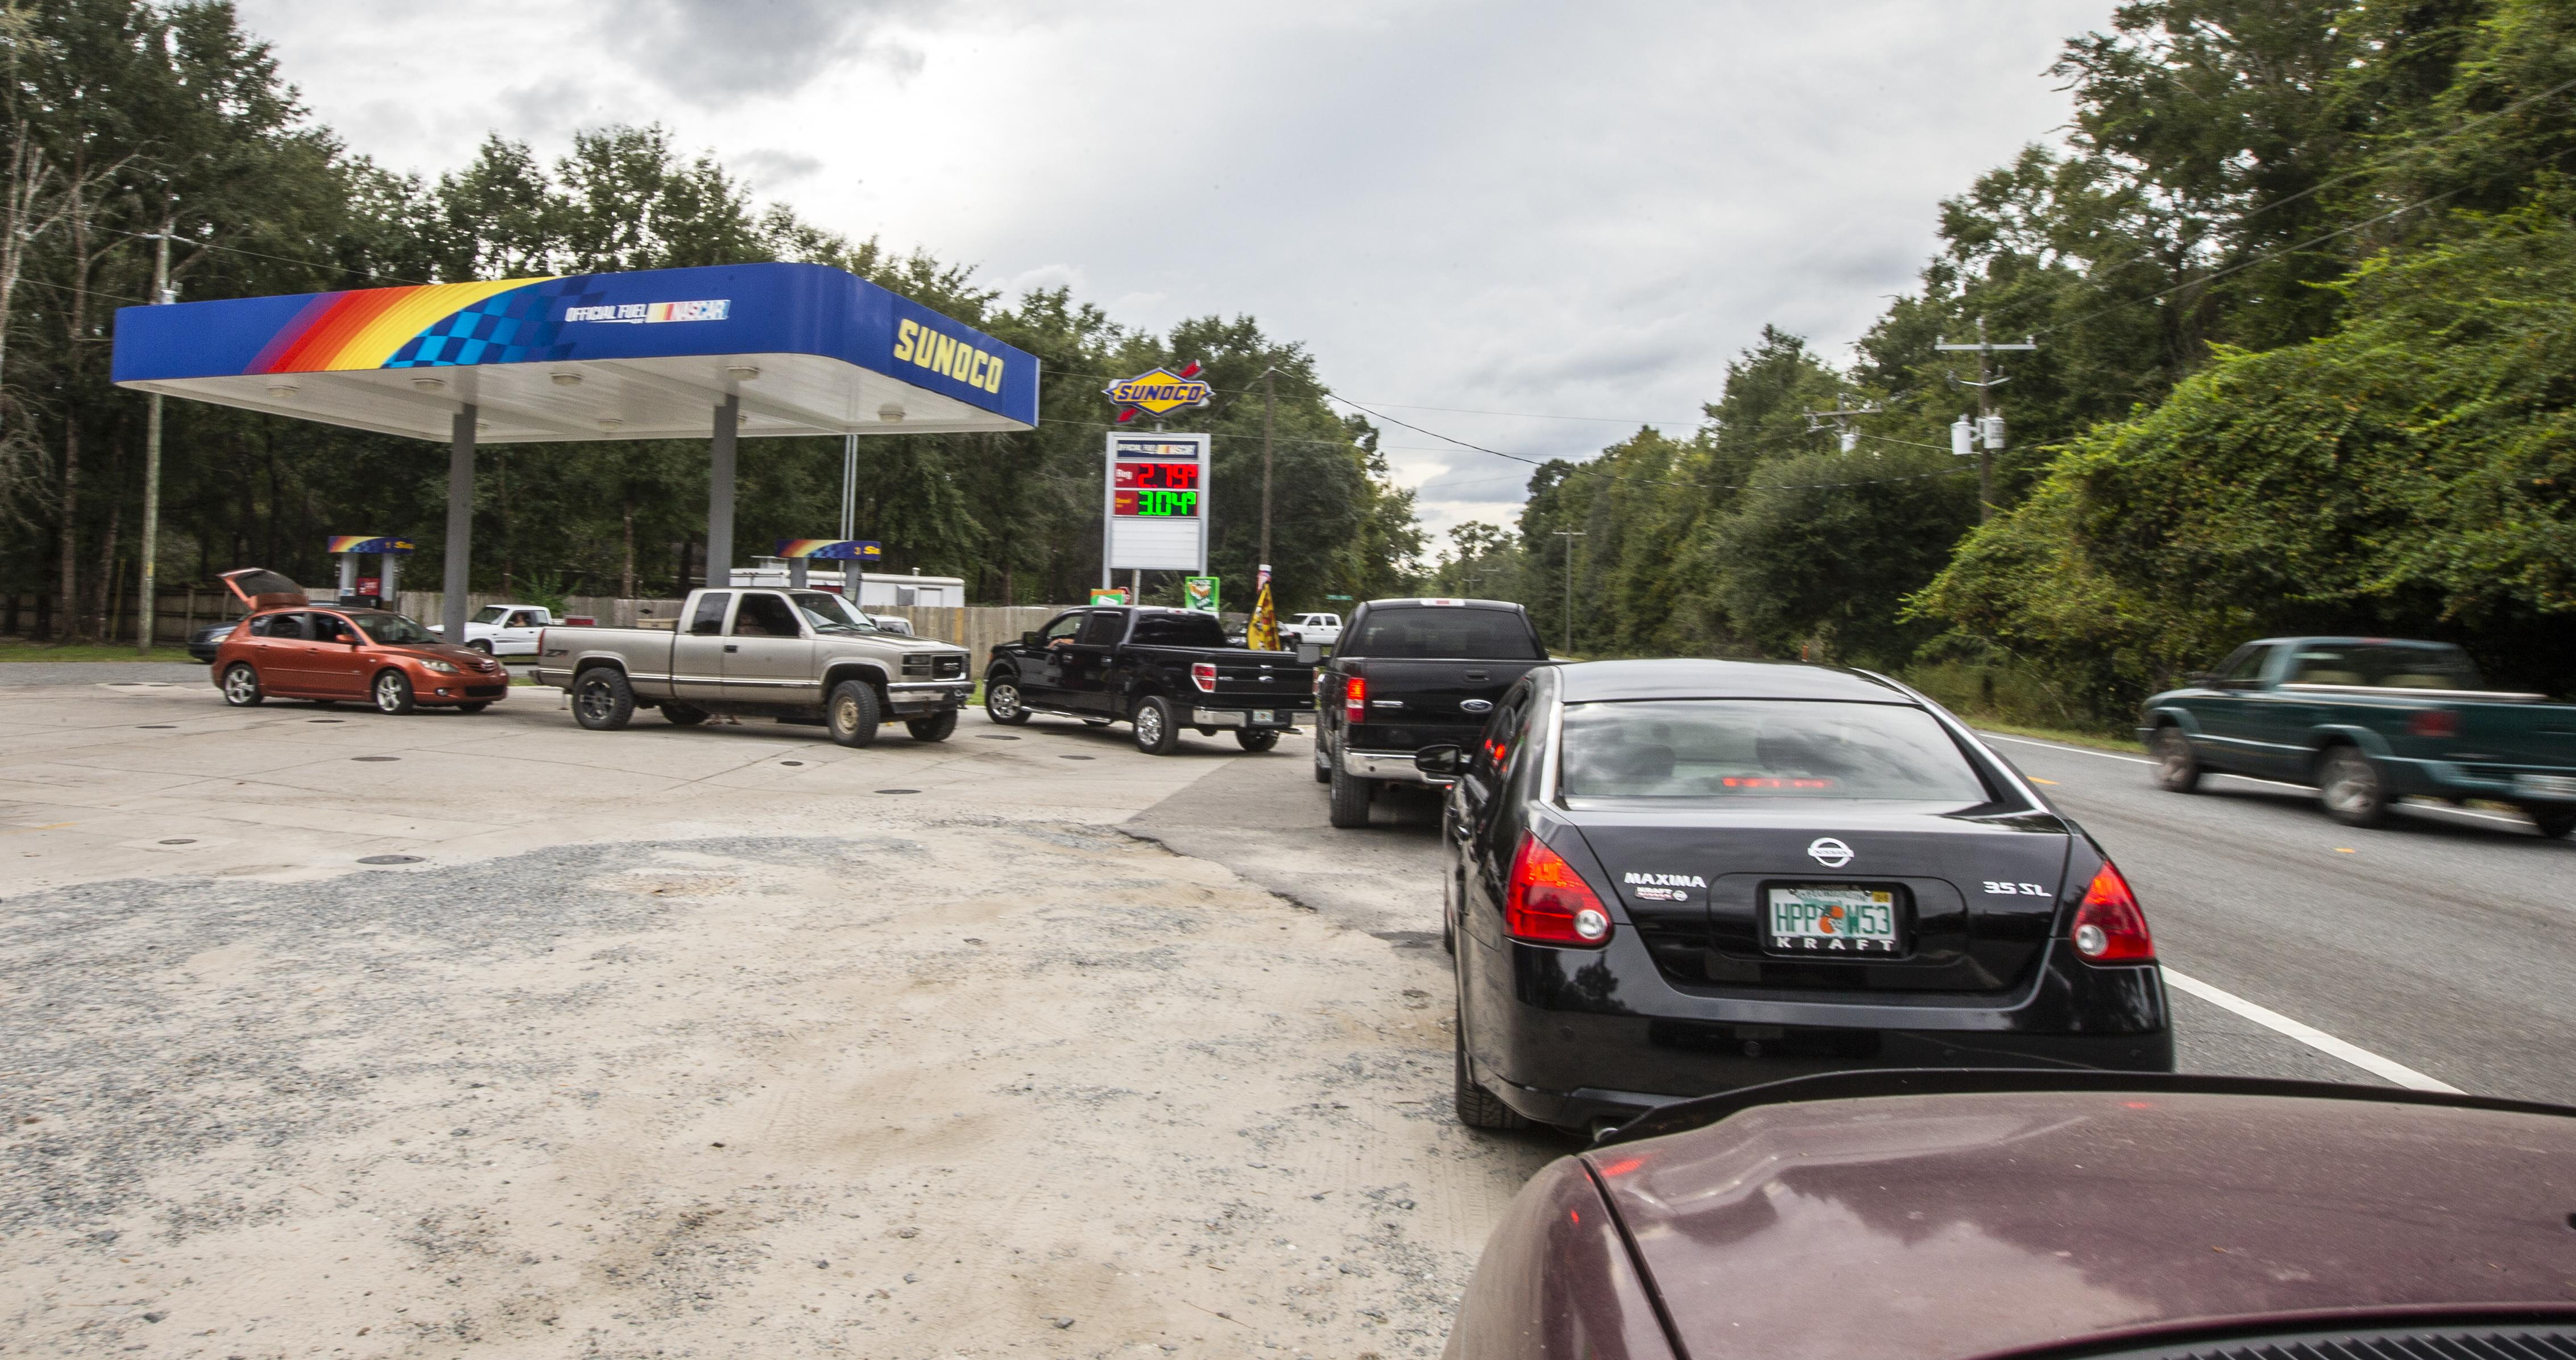 A line of cars leads up to a gas station on the side of a rural road